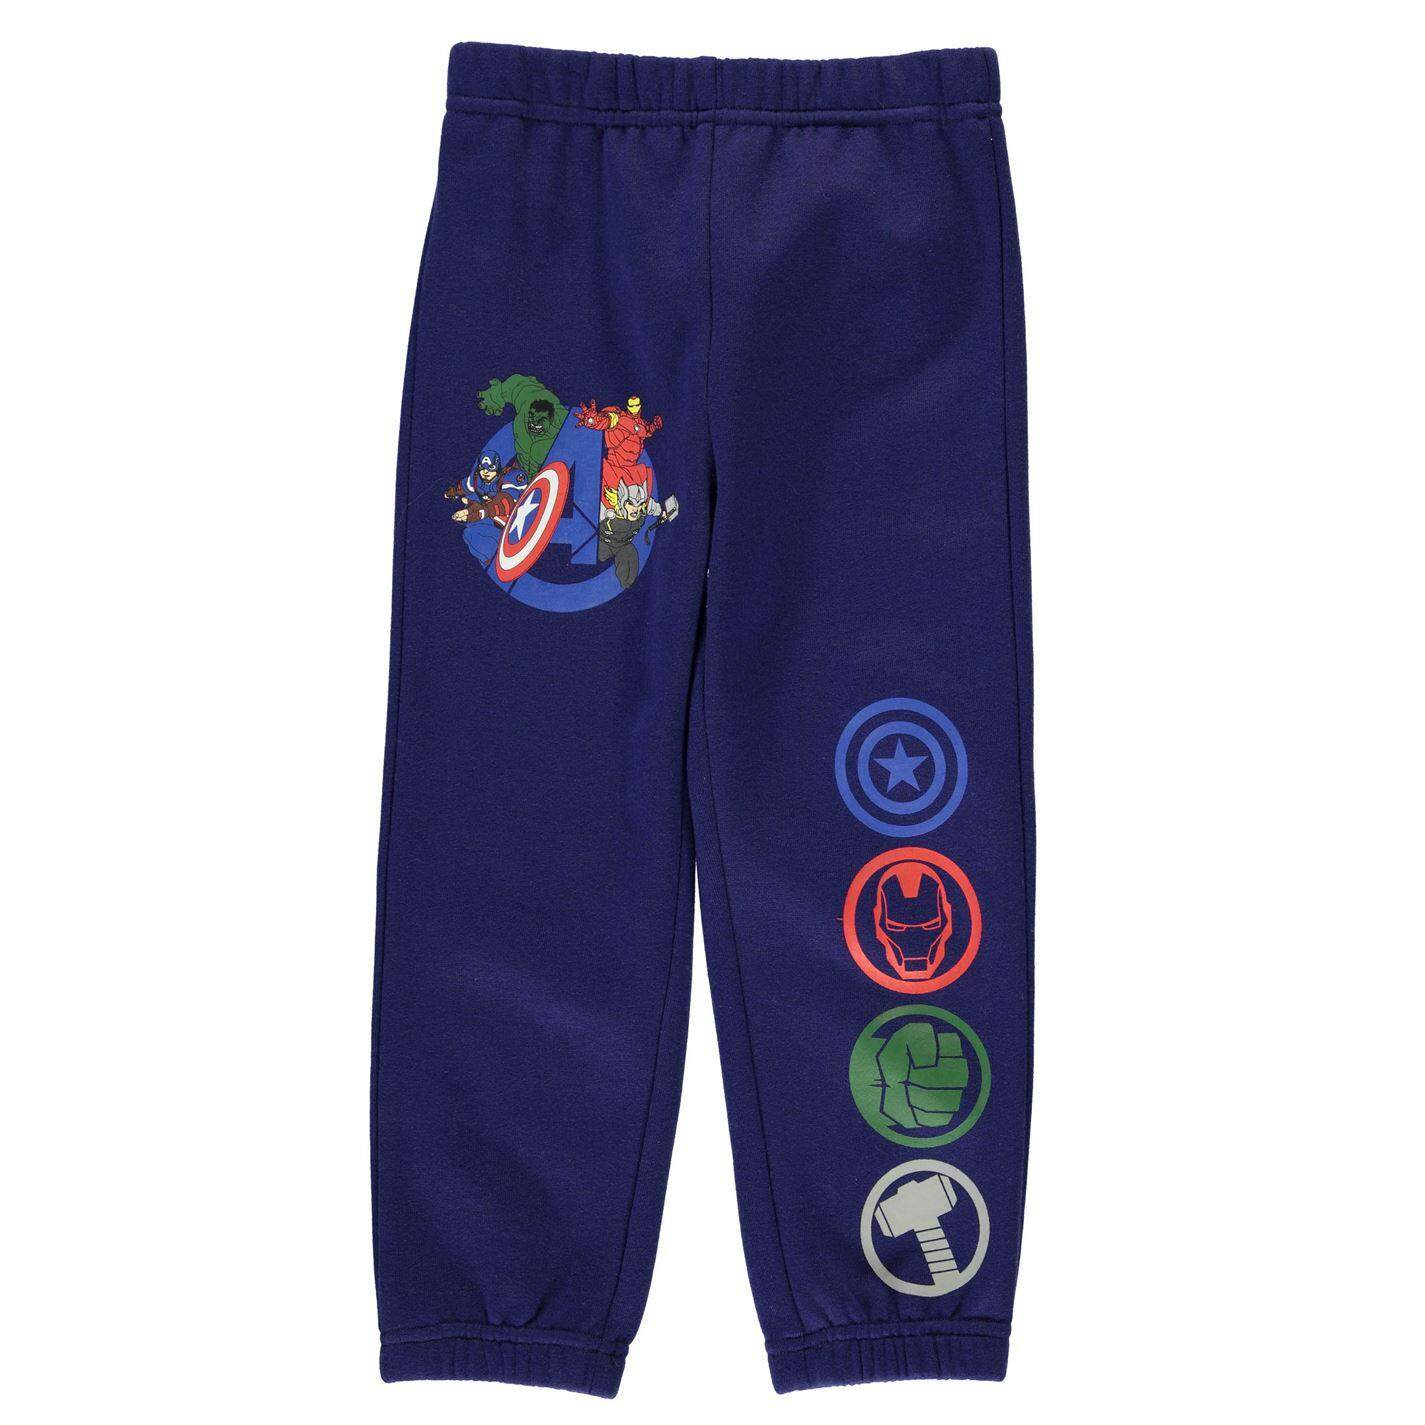 Character Kids Boys Jogging Pants Infant (avengers) By Sports Direct Mst Sdn Bhd.